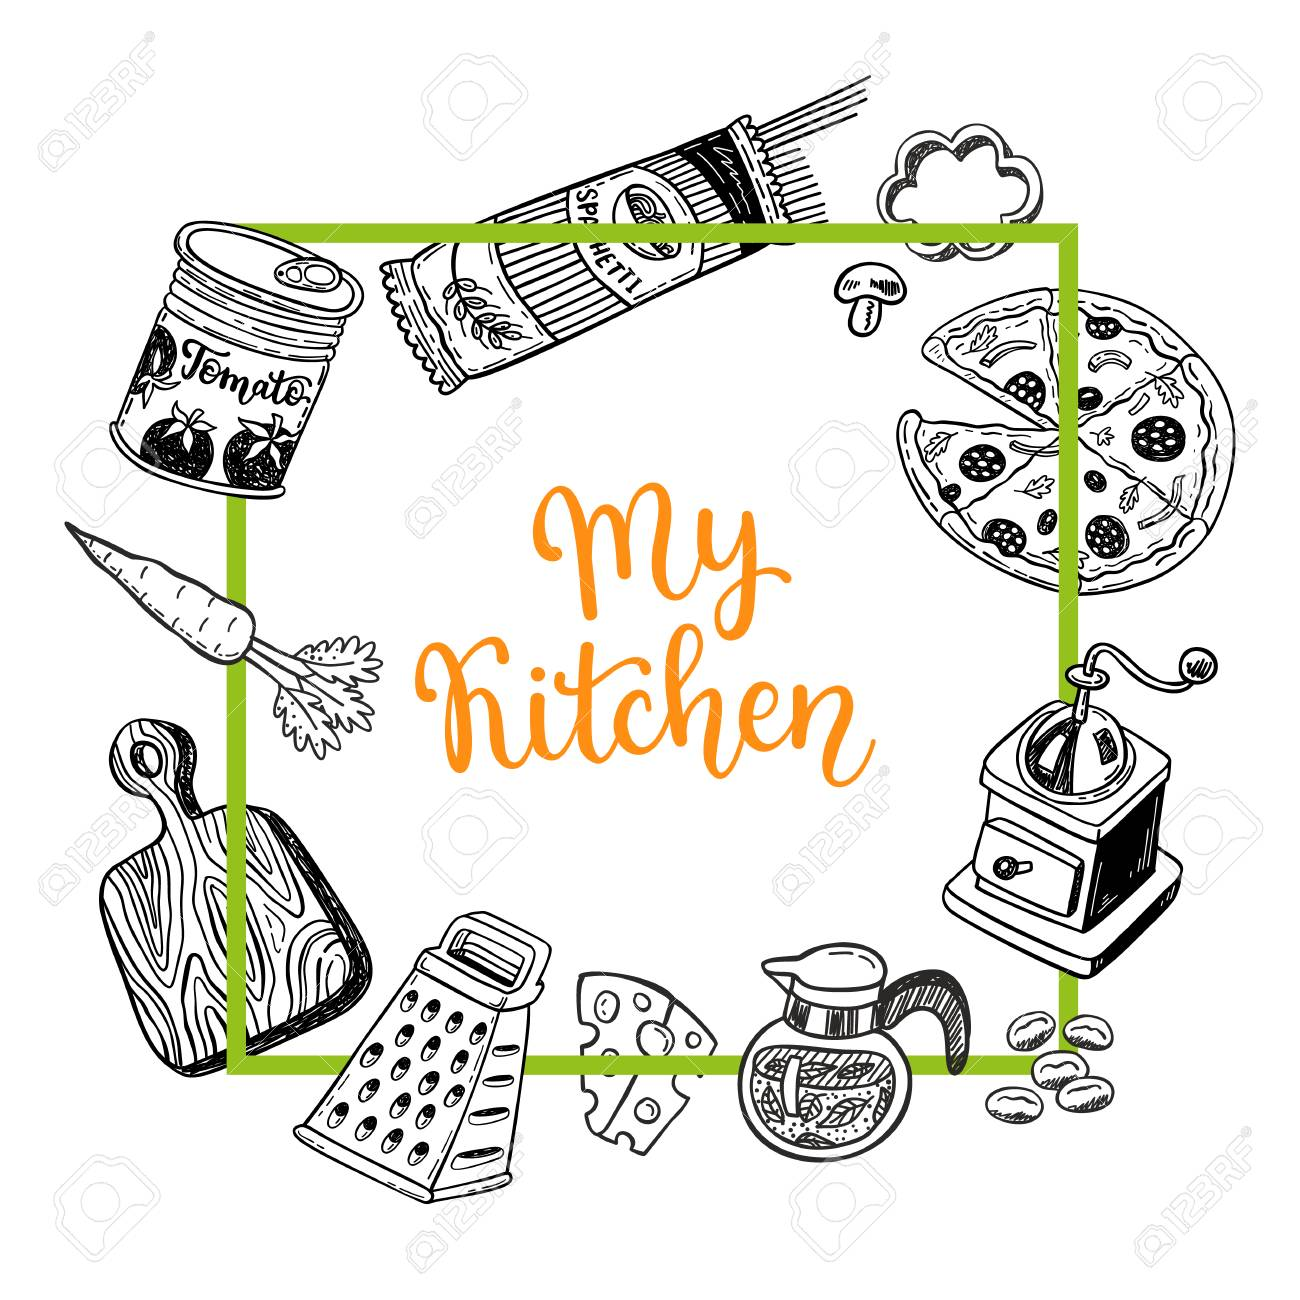 Page template set for notes or cooking recipe cards with hand page template set for notes or cooking recipe cards with hand drawn doodle food and kitchen forumfinder Choice Image